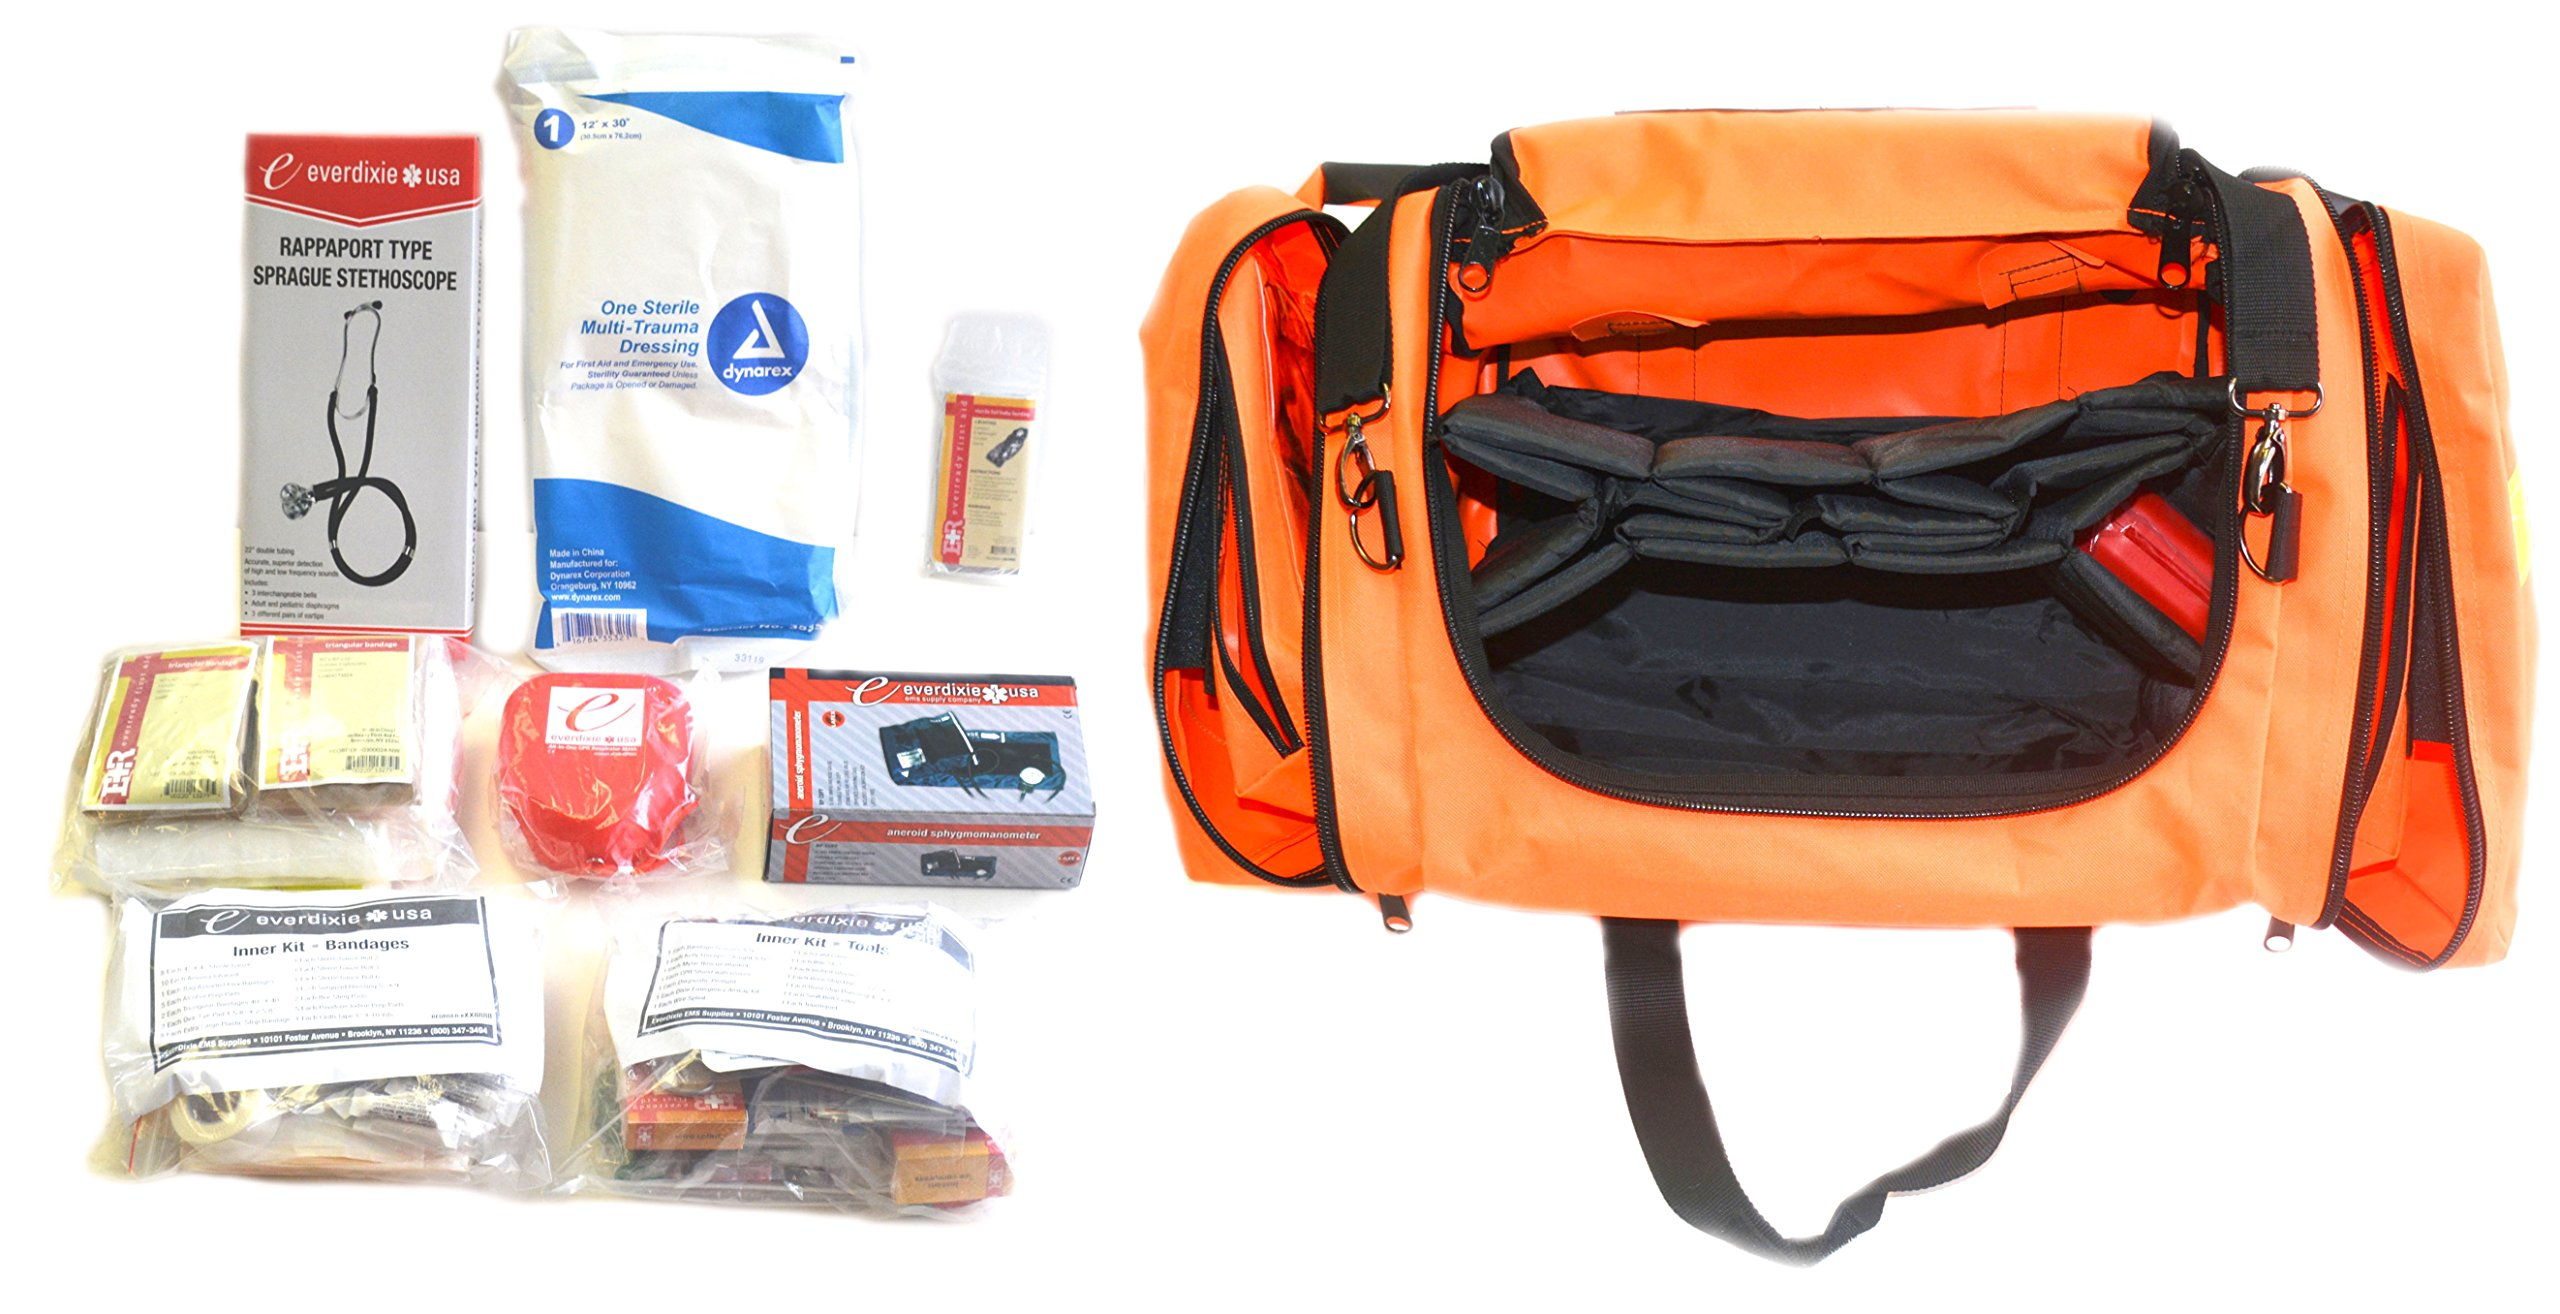 First Aid Kit Emergency Response EMT Bag Complete - Ideal for Camping, Firefighters, EMT, First Responders, Police and Military